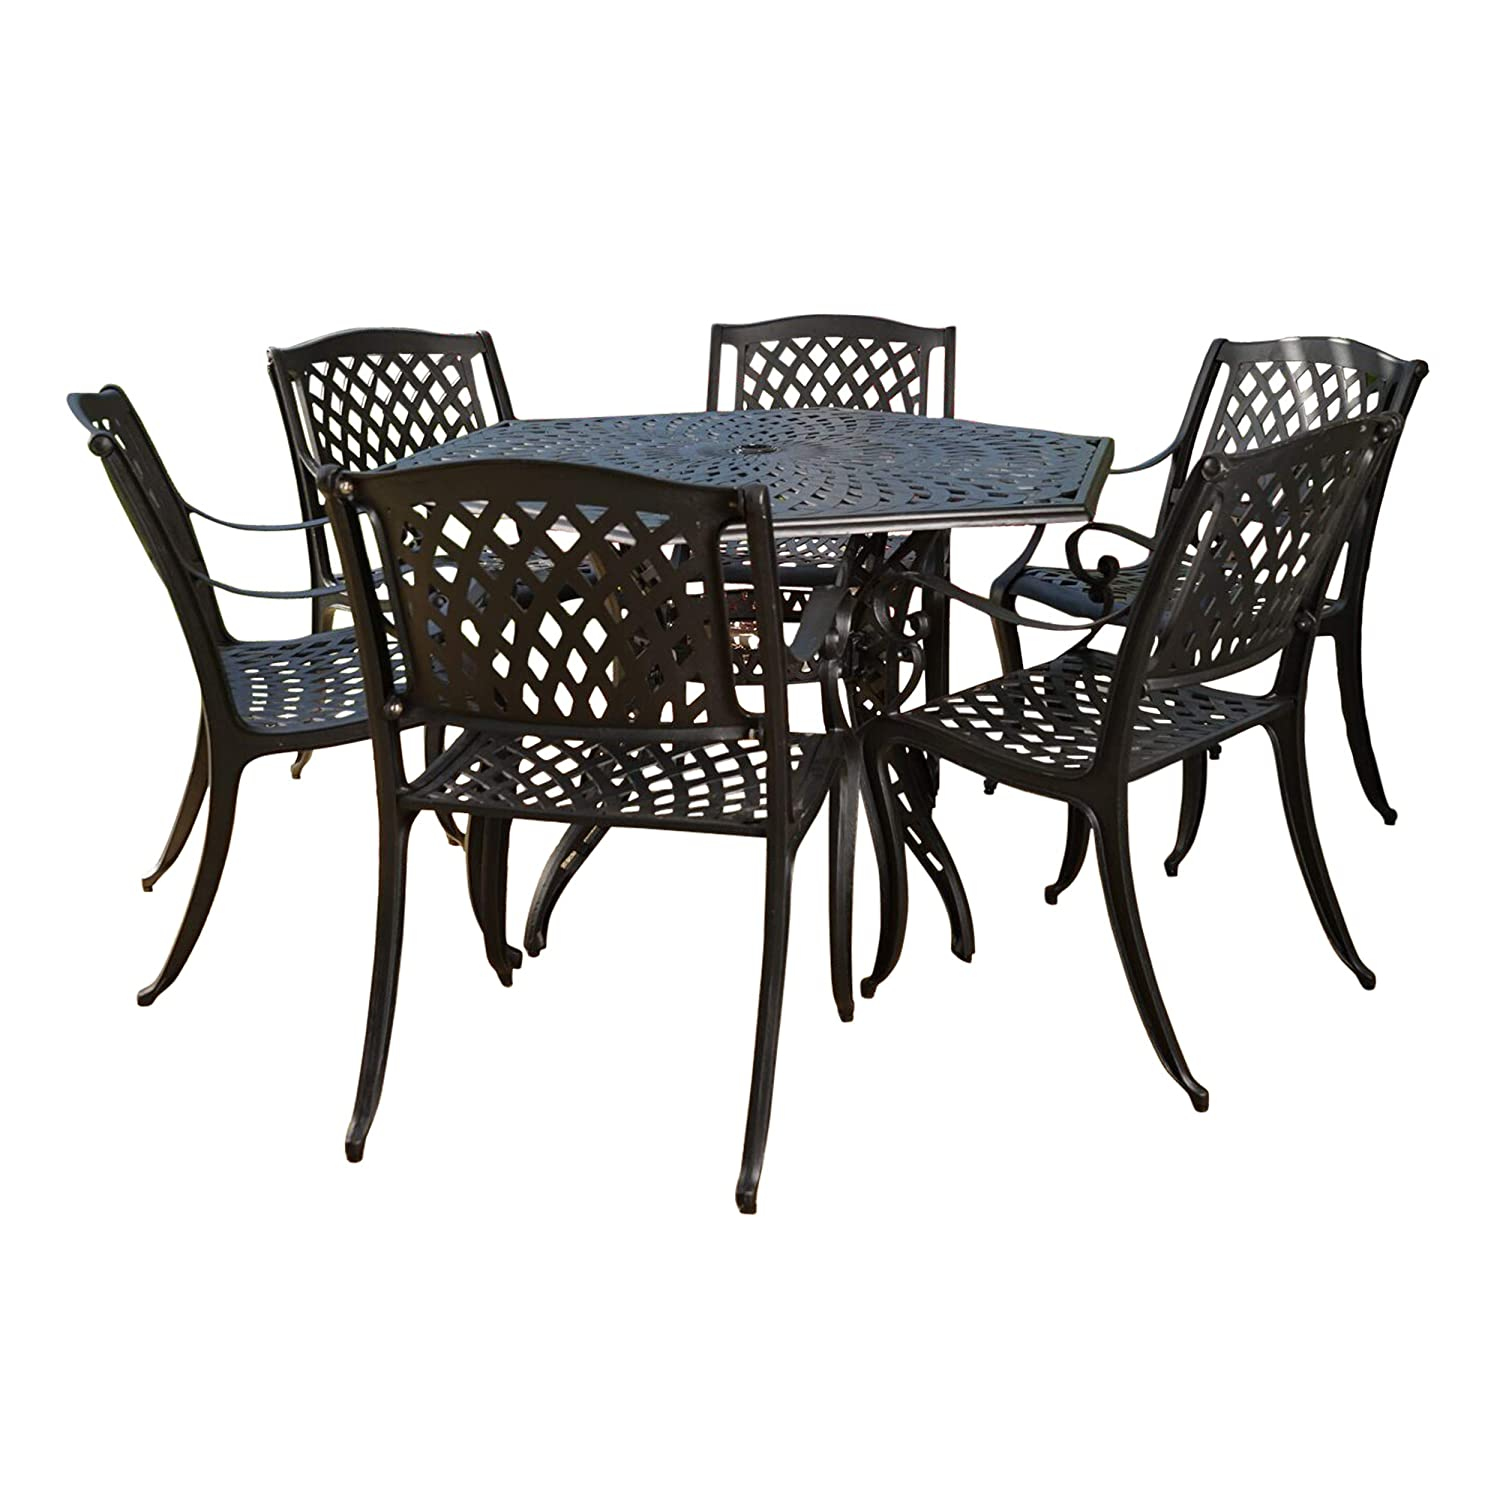 Christopher Knight Home Great Deal Furniture | Hammond | 7 Piece Cast Aluminum Dining Set | Perfect for Patio | in Bronze